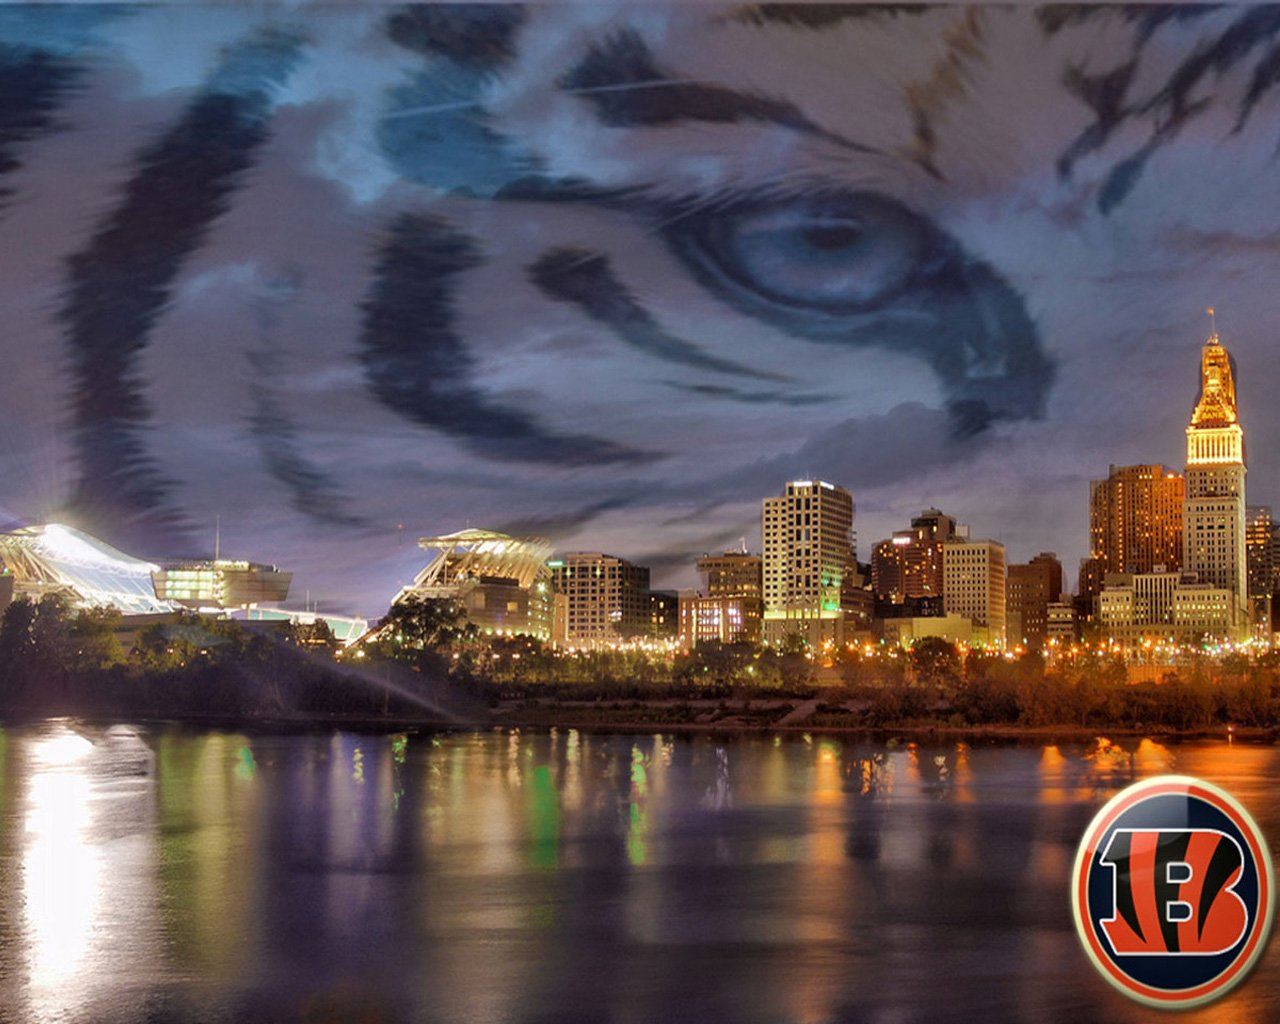 cincinnati bengals wallpaper and screensavers - wallpapersafari